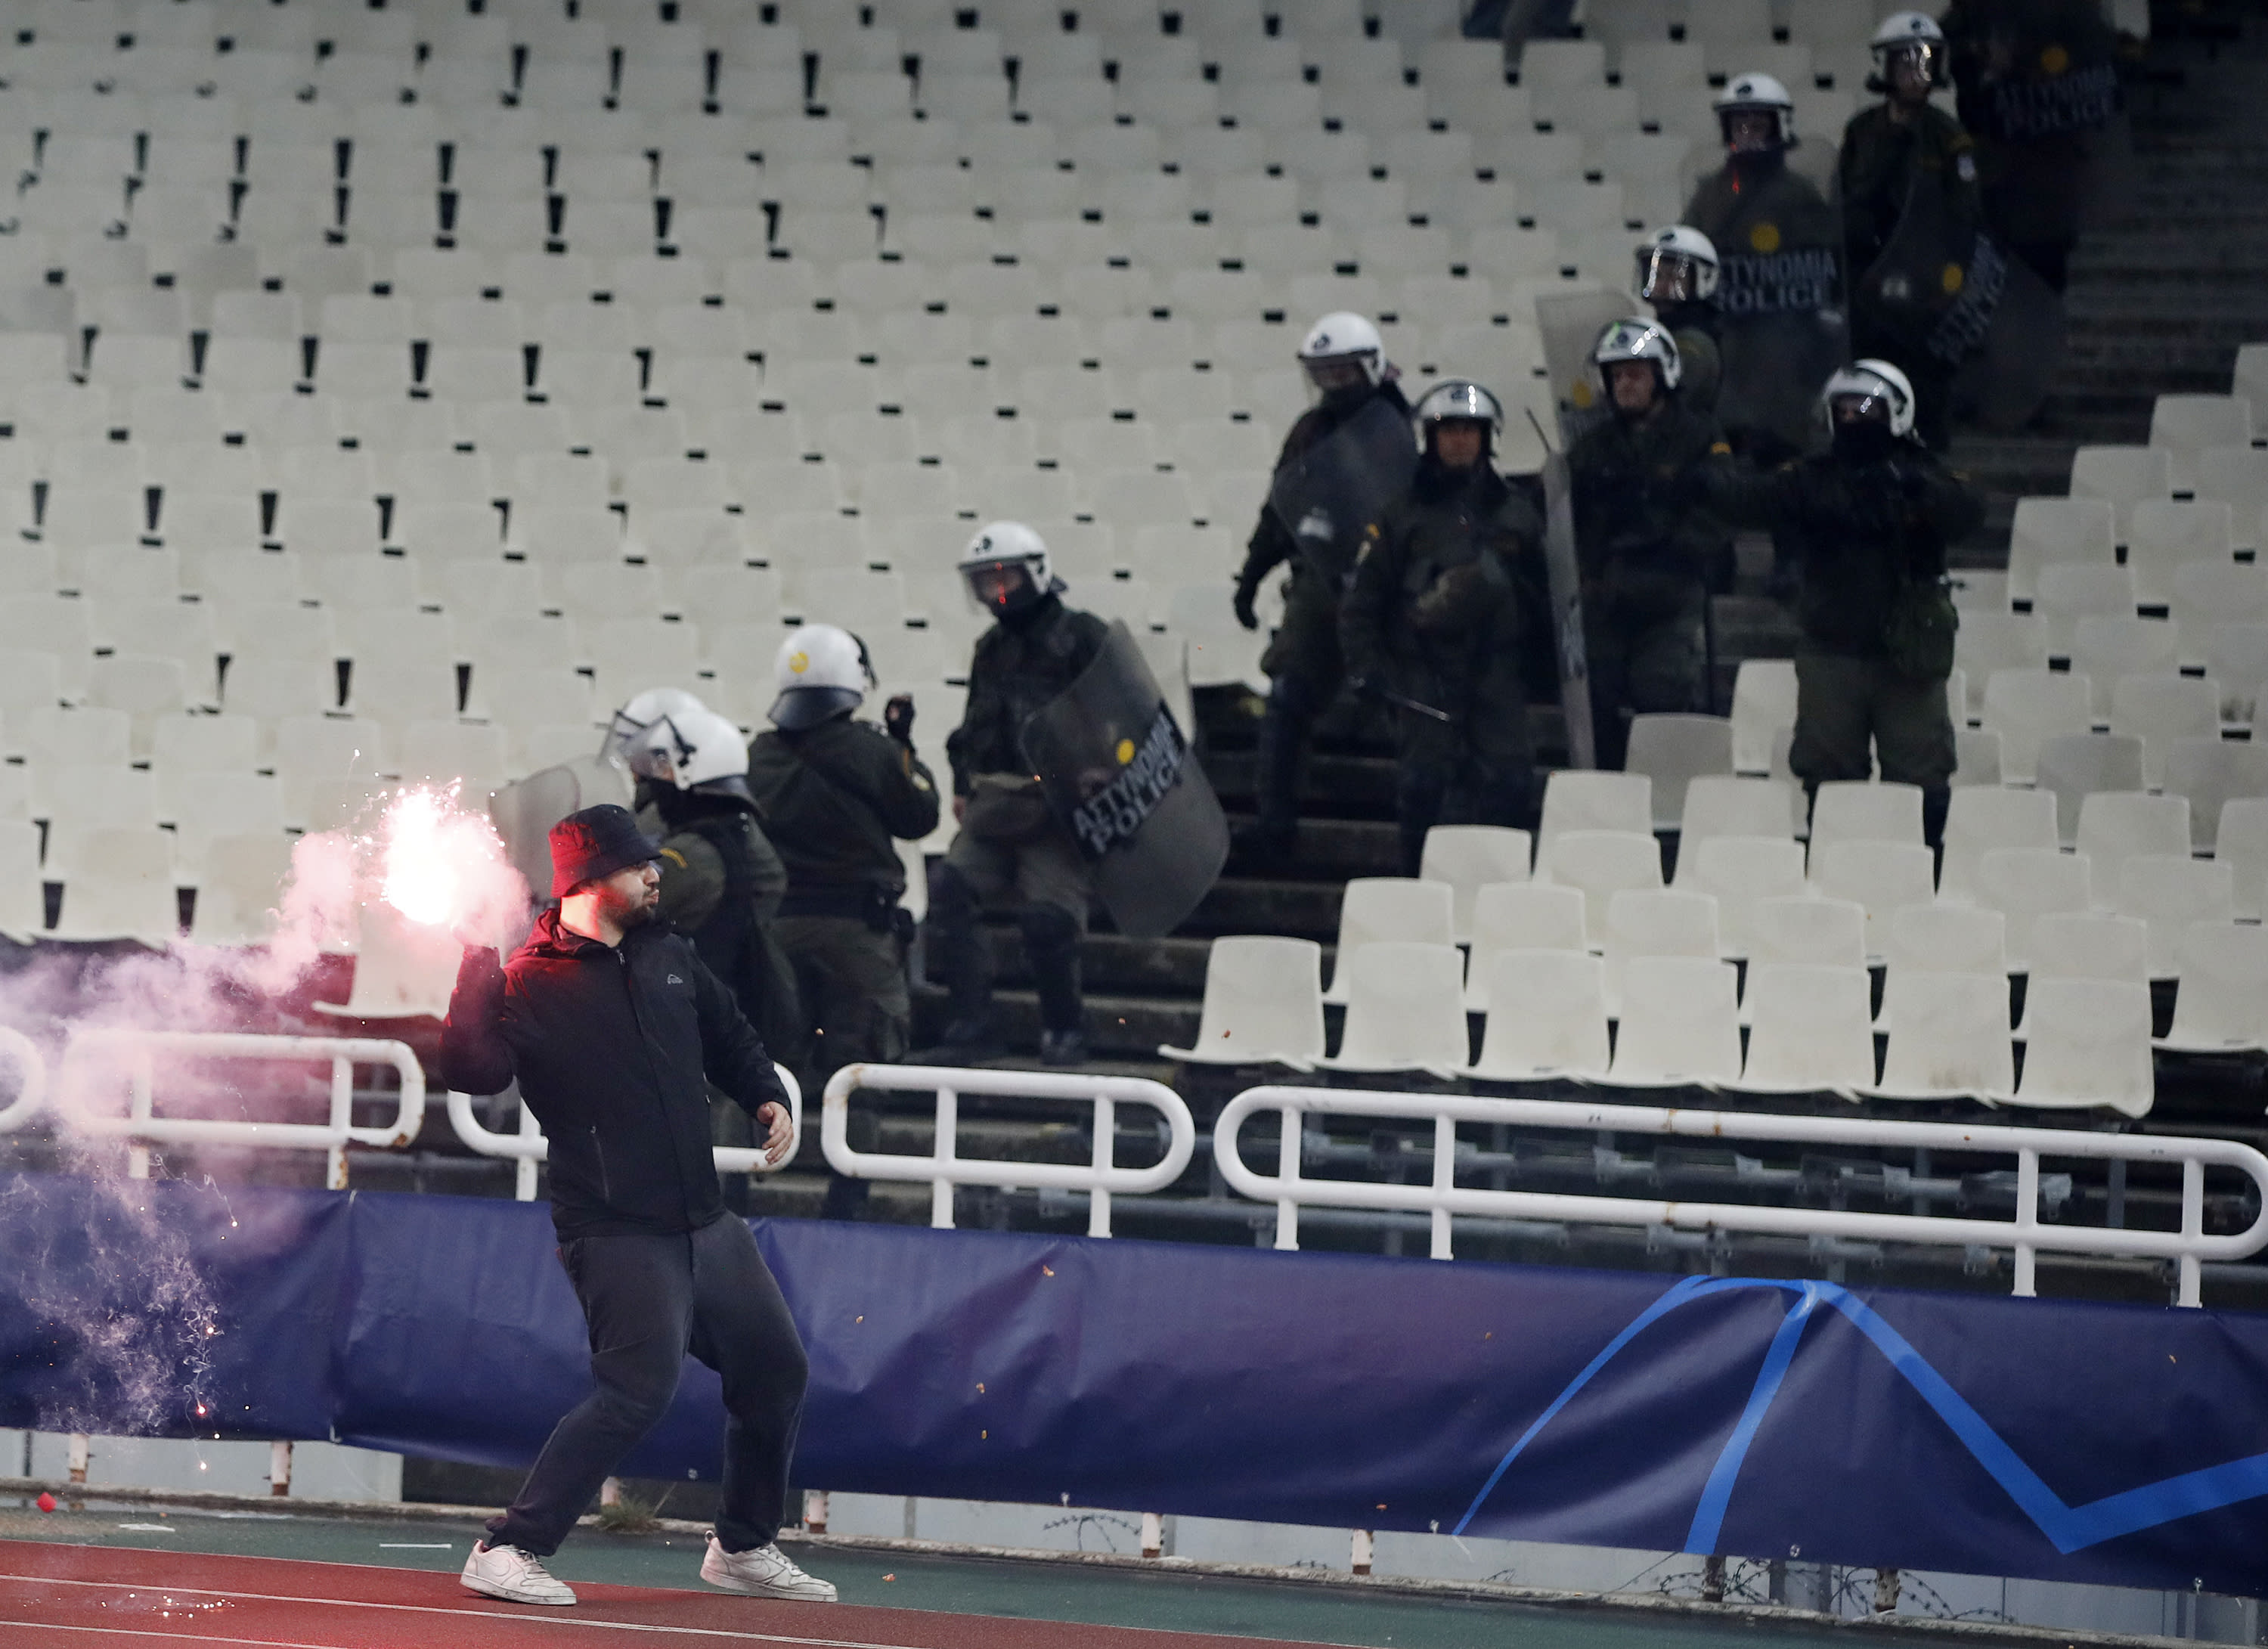 A fan throws a flare towards Ajax supporters during a Group E Champions League soccer match between AEK Athens and Ajax at the Olympic Stadium in Athens, Tuesday, Nov. 27, 2018. (AP Photo/Thanassis Stavrakis)